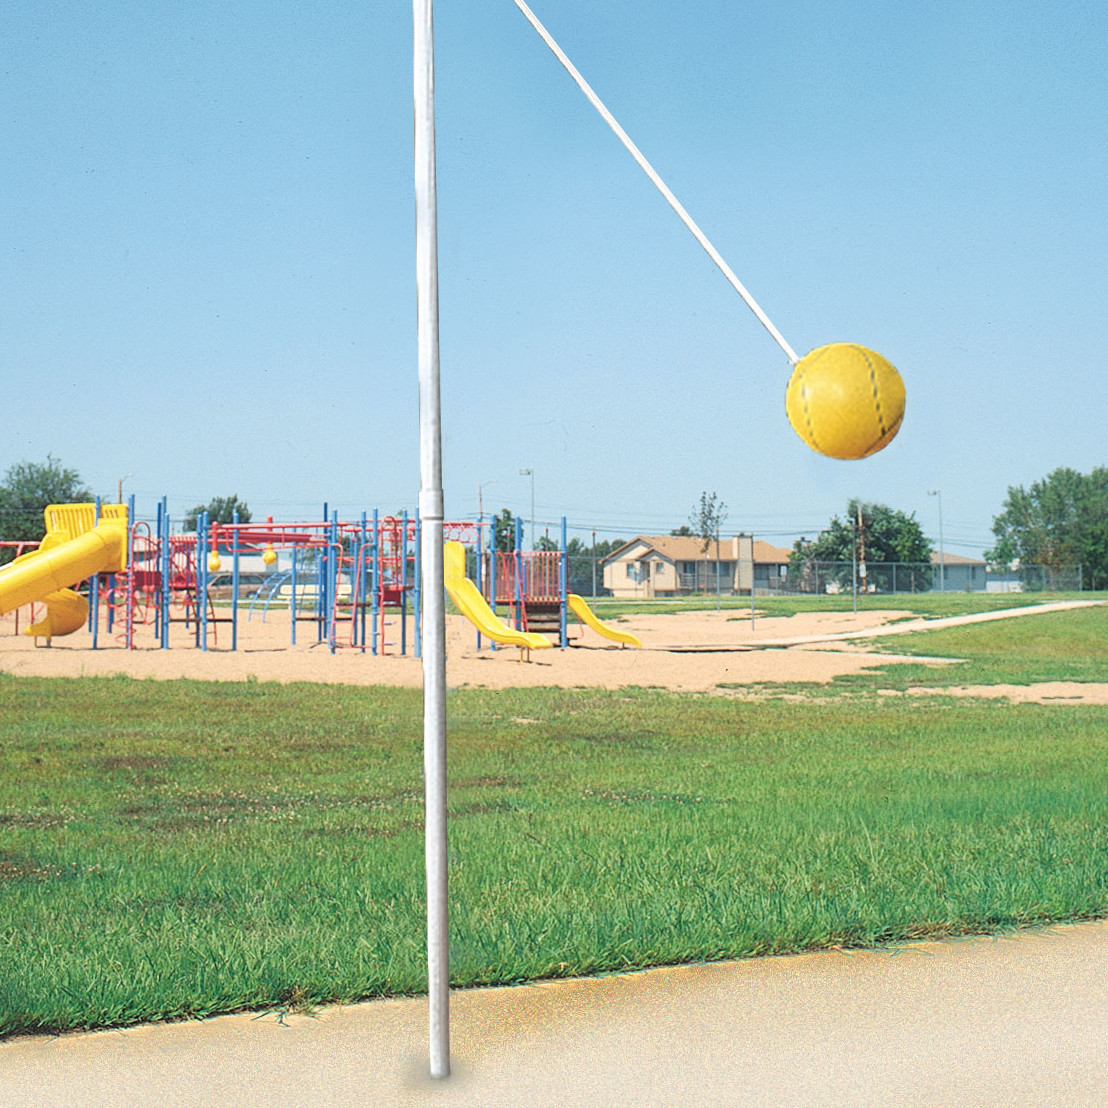 Outdoor In-Ground Tetherball Game Set - Bison, Inc.